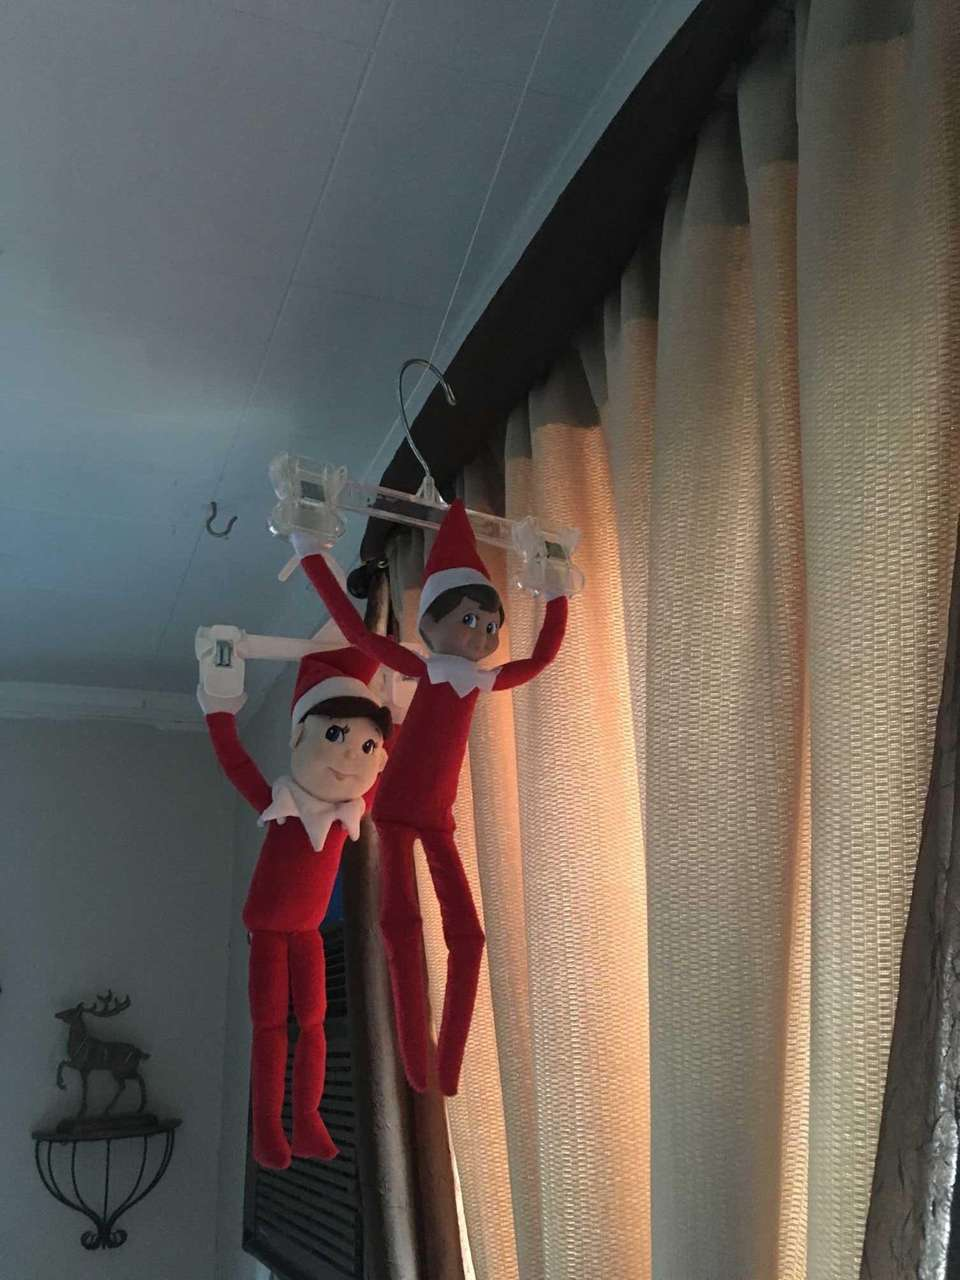 Our elves, Sam and Elliot, are so adventurous!